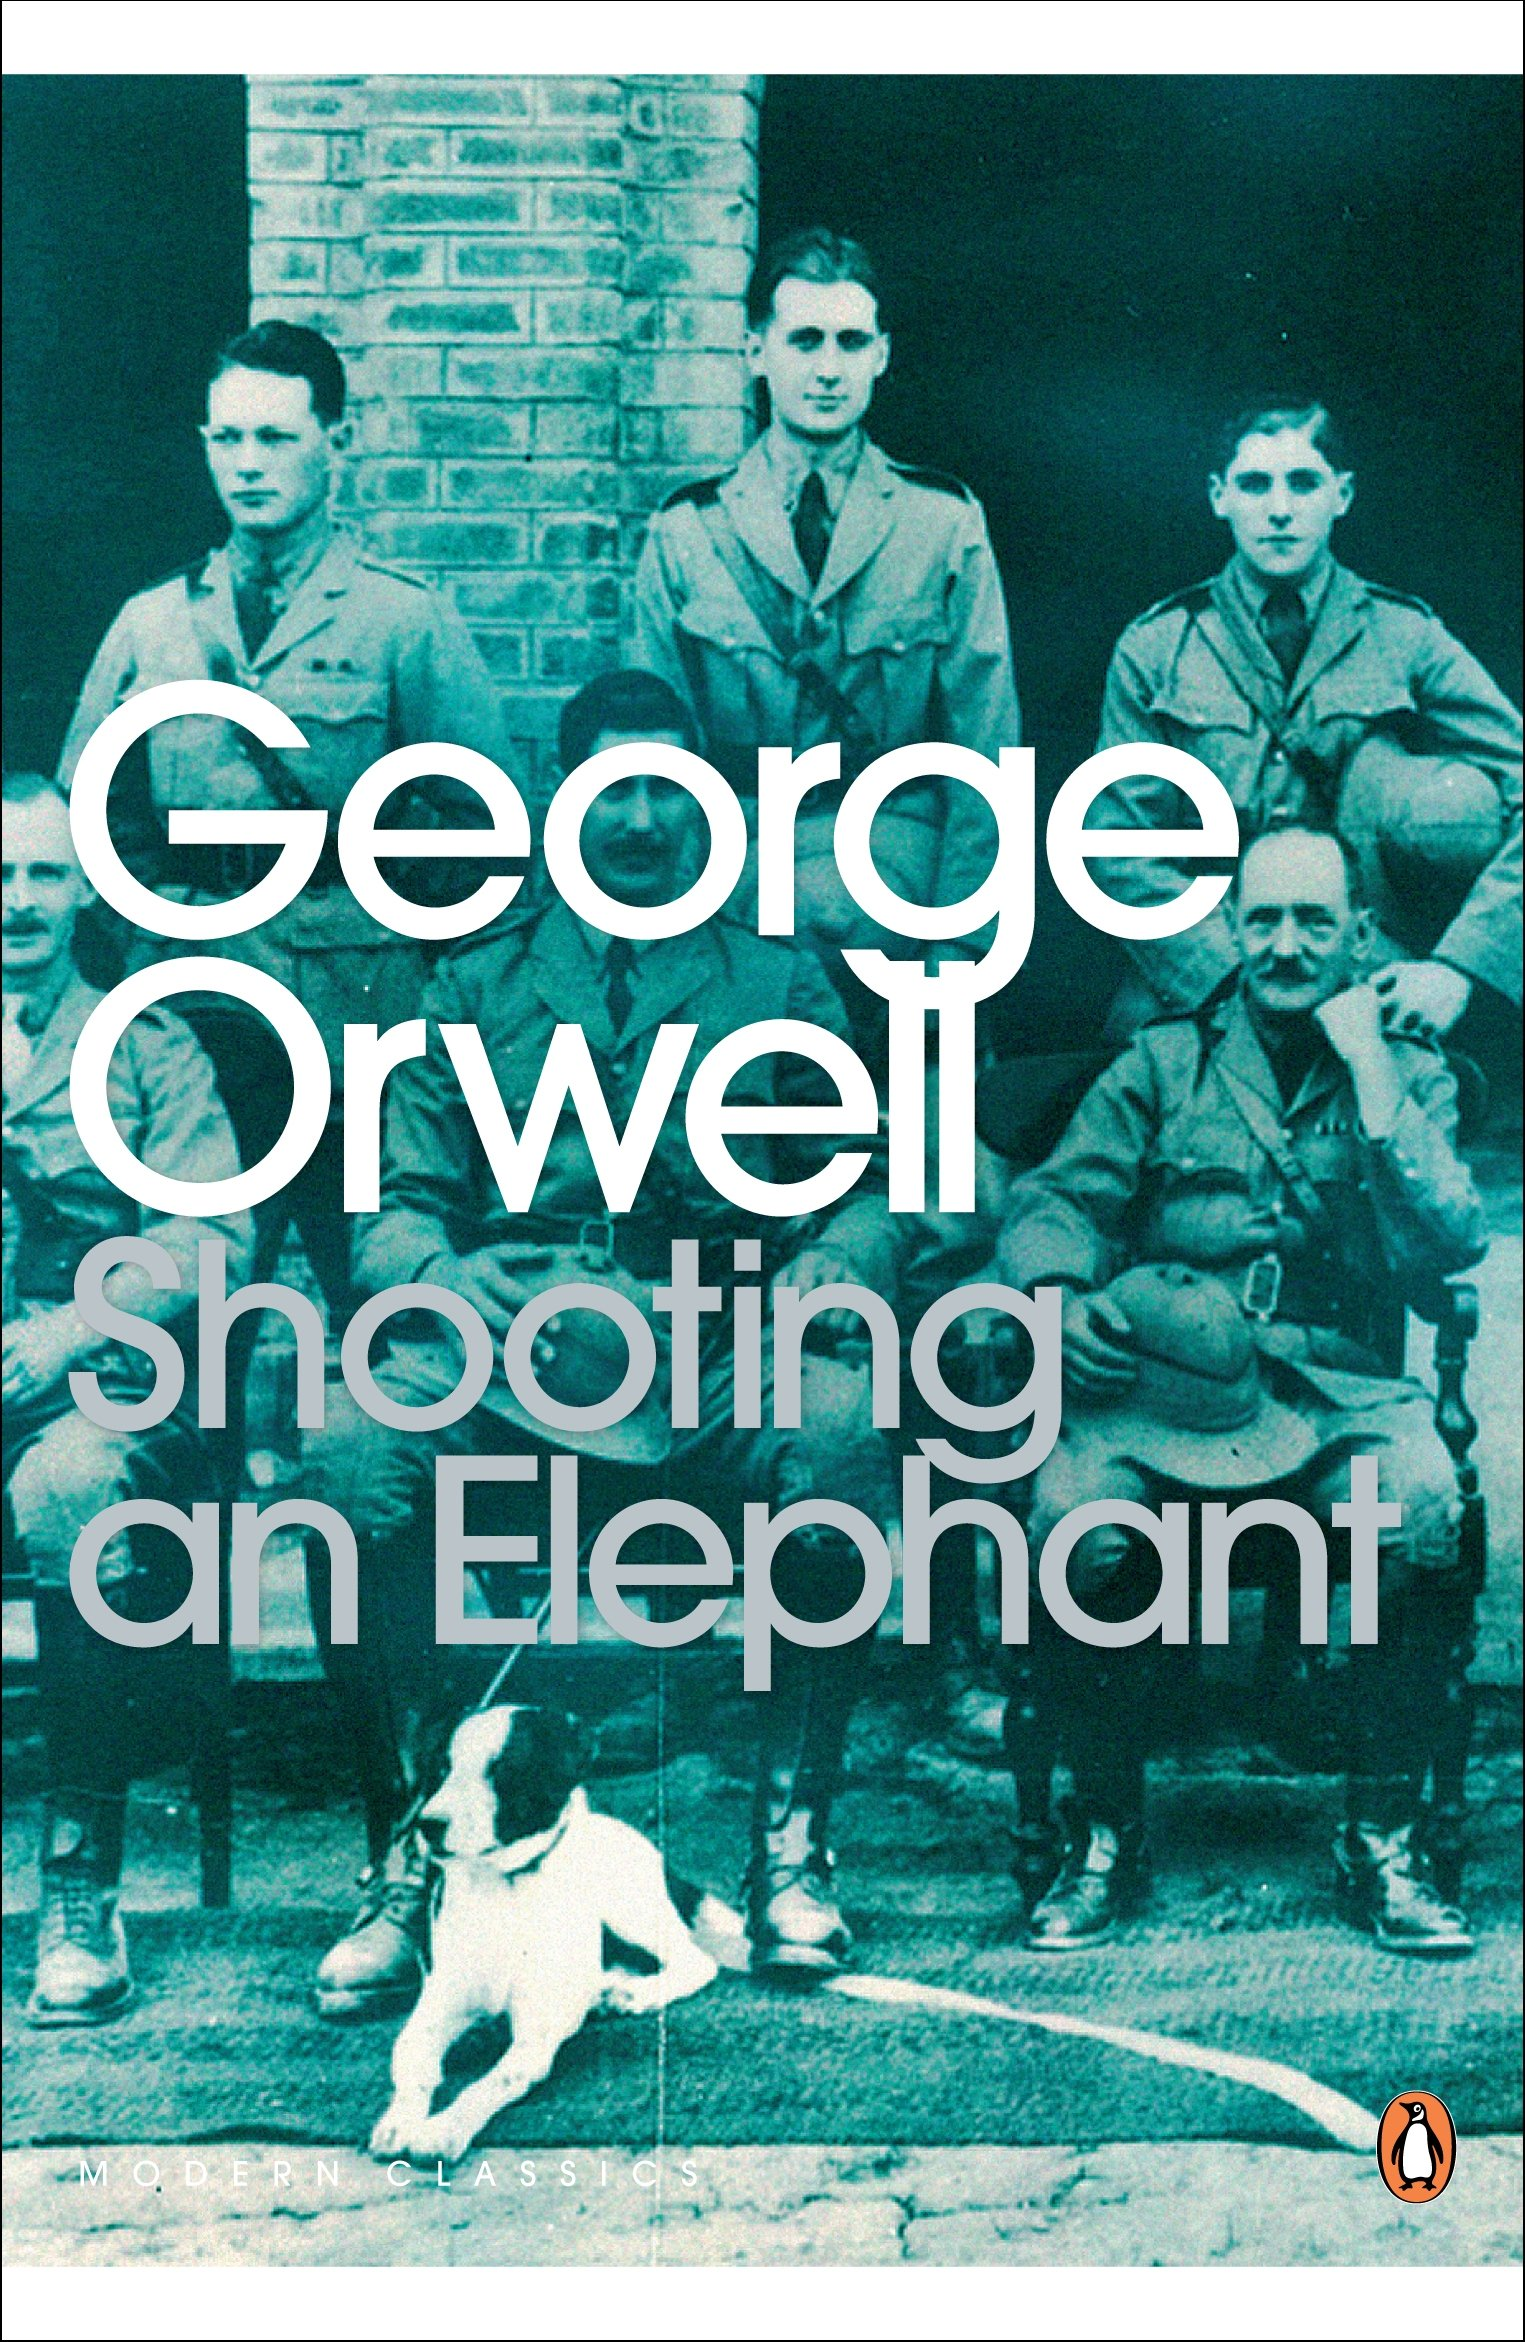 shooting an elephant and other essays penguin modern classics shooting an elephant and other essays penguin modern classics co uk george orwell jeremy paxman 9780141187396 books